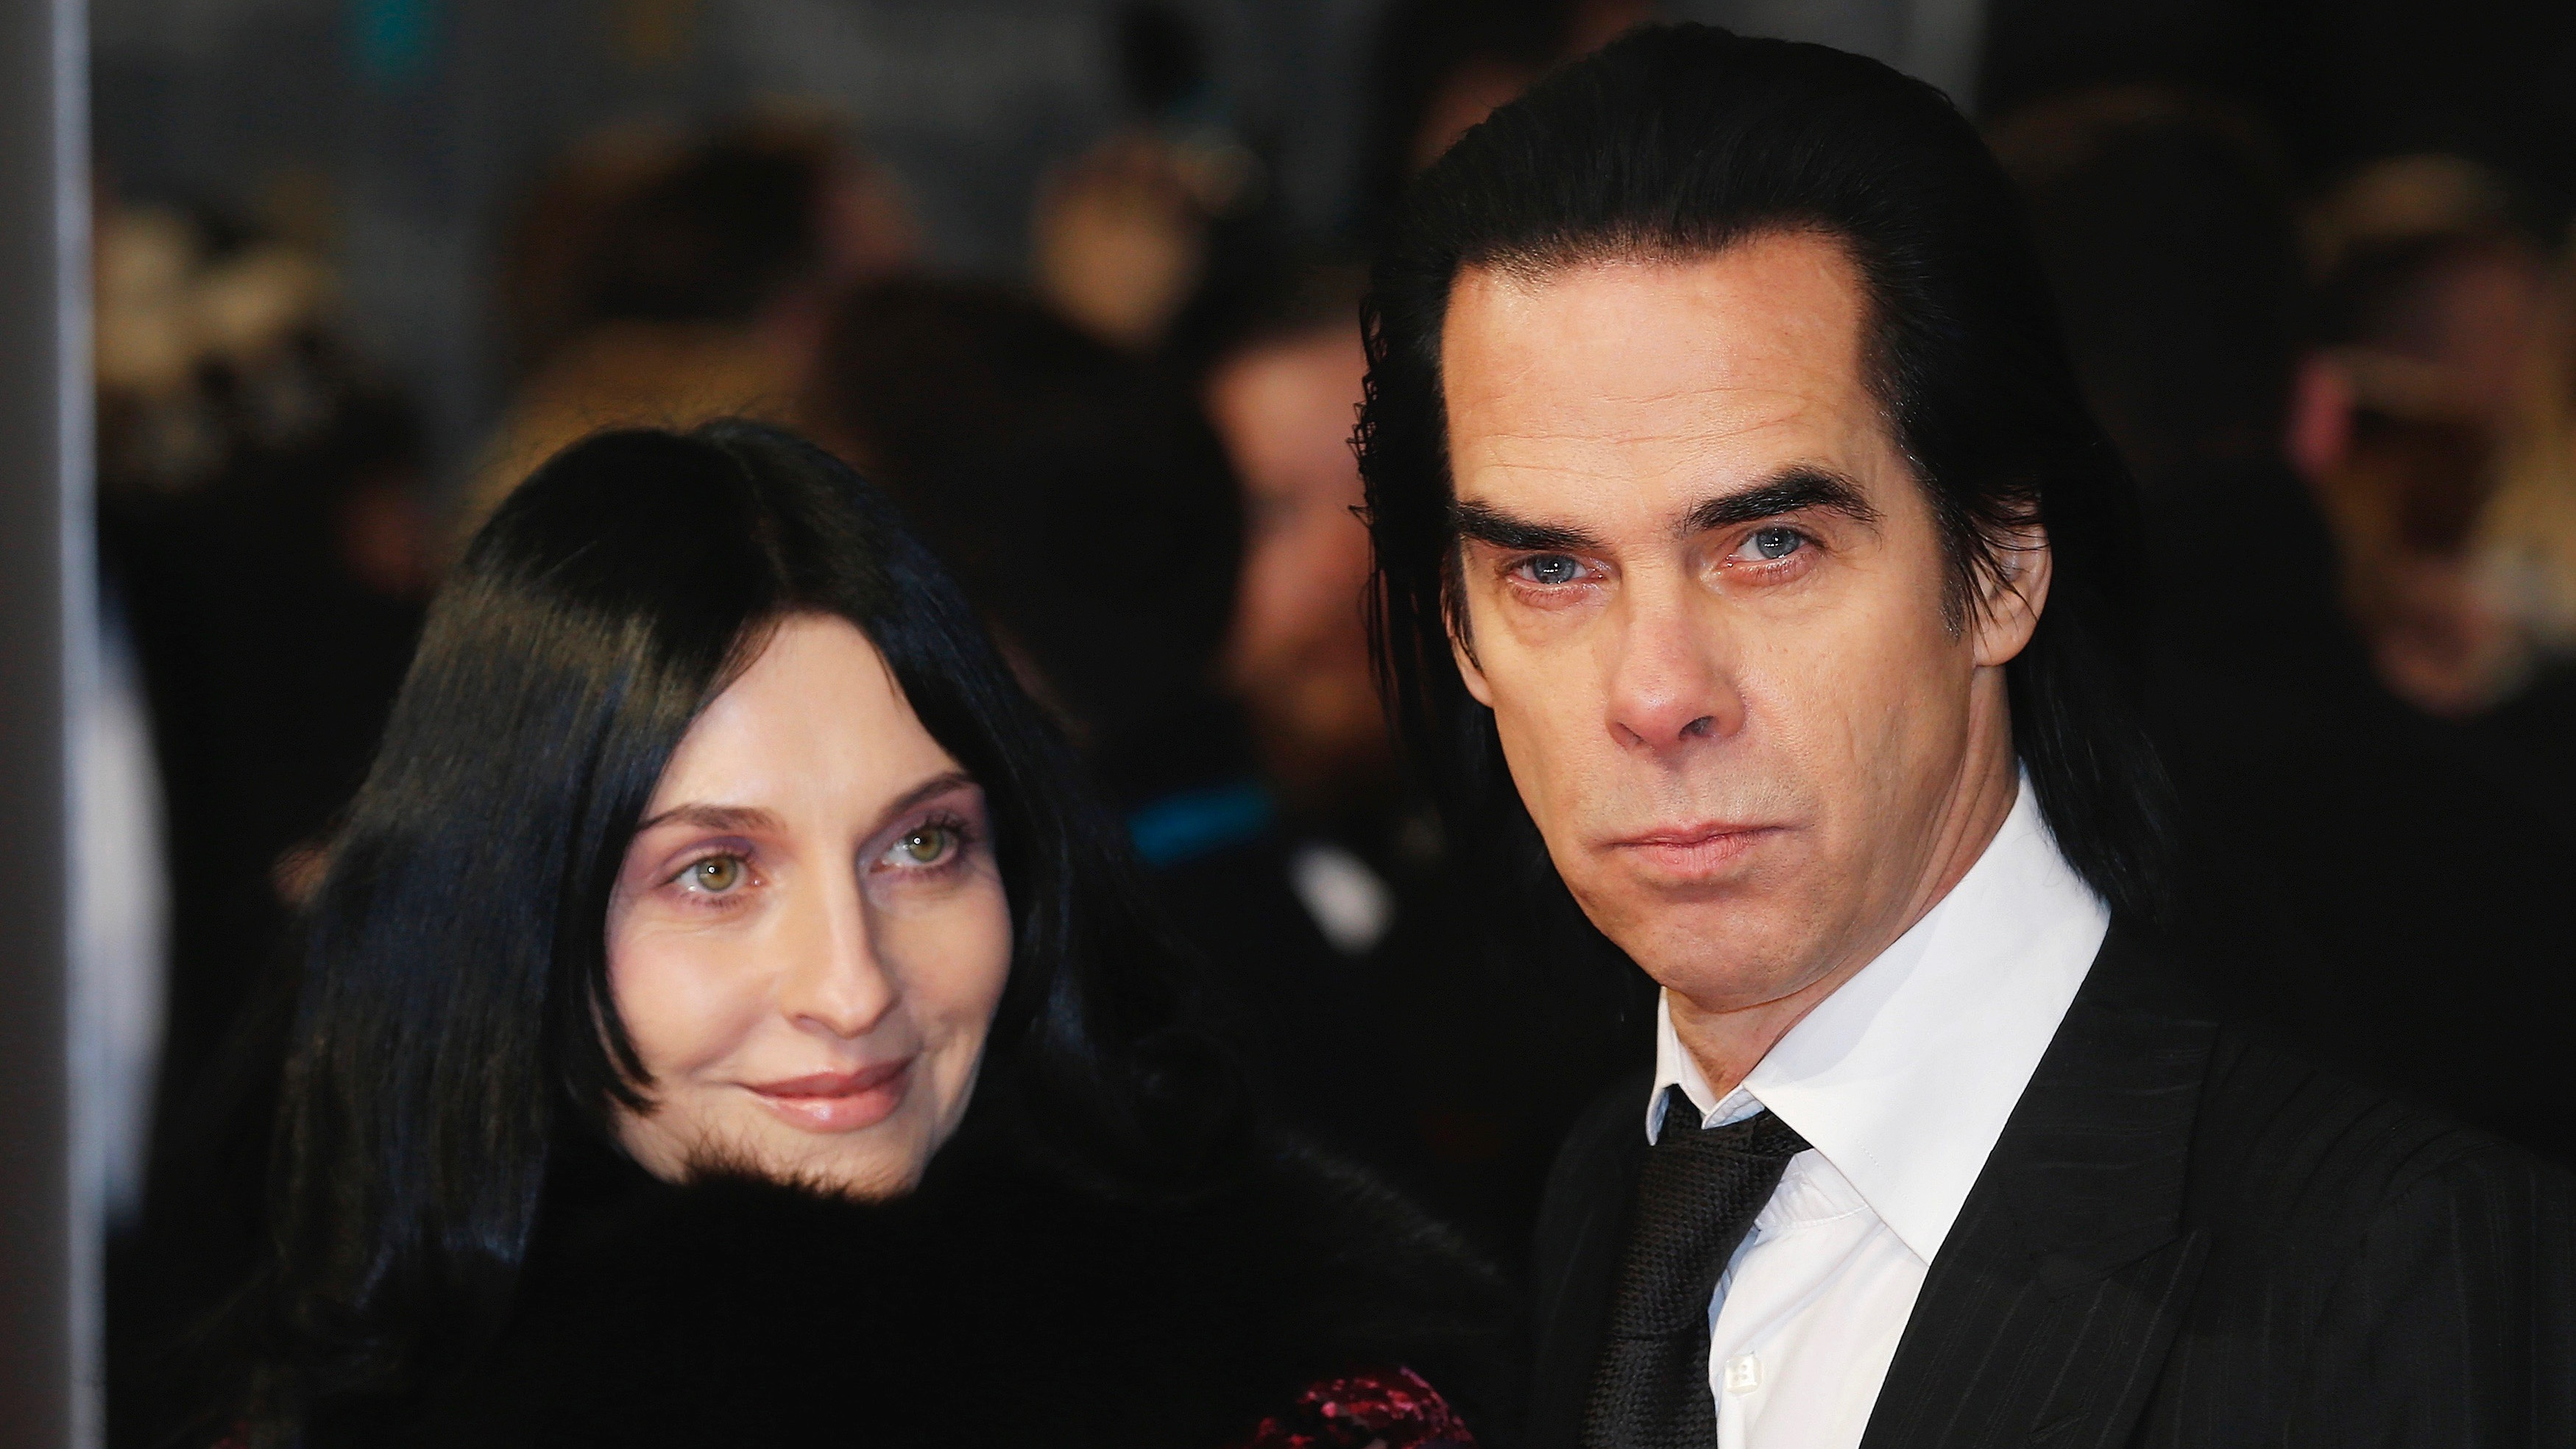 Nick Cave illuminates love and loss in a letter to a fan